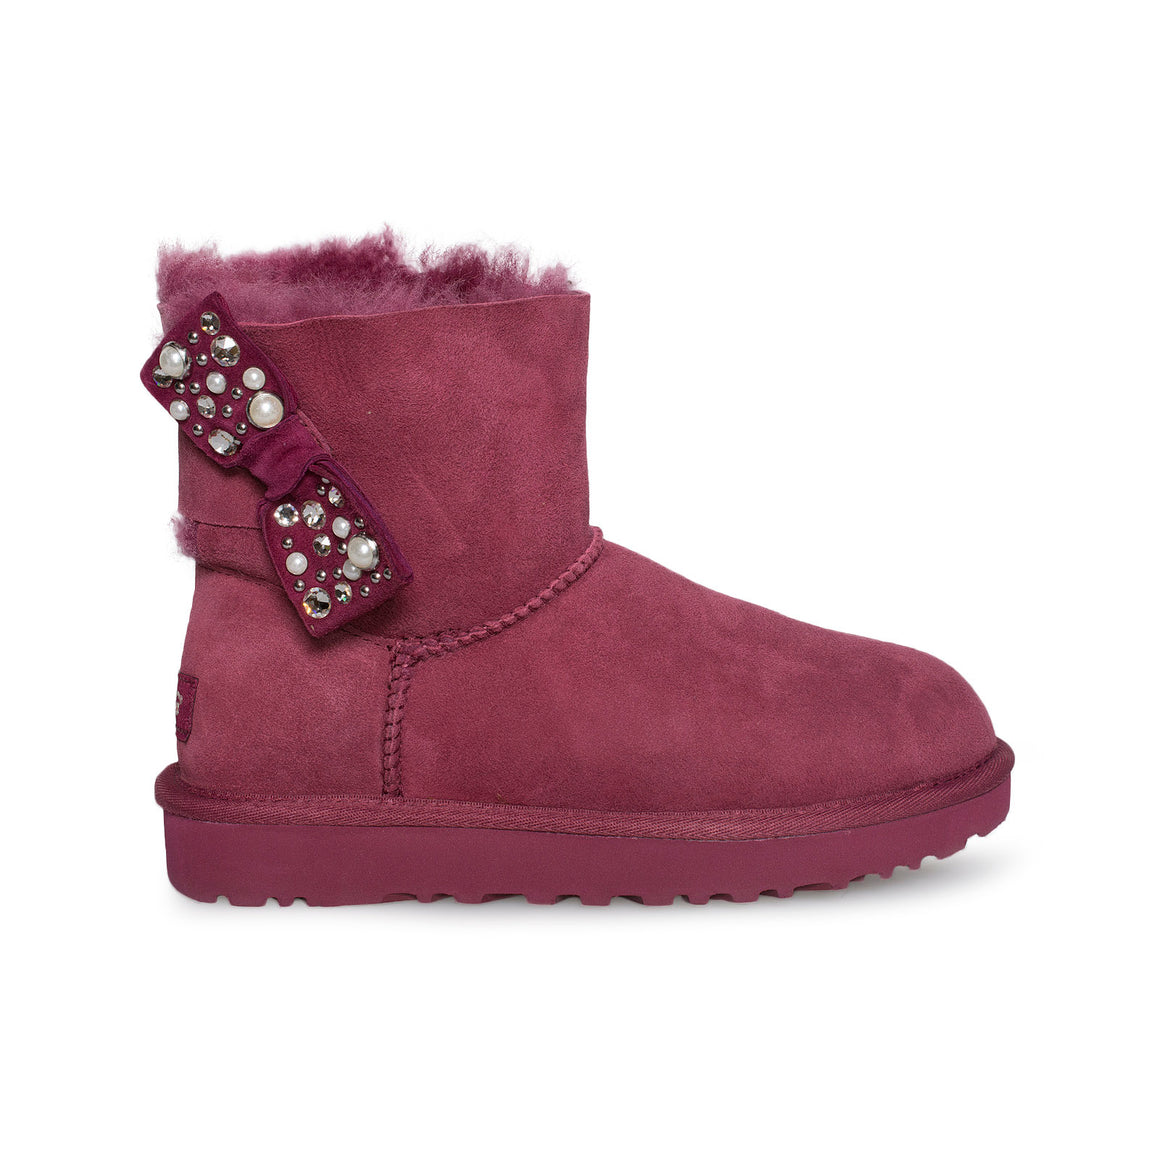 UGG Mini Bailey Bow Brilliant Garnet Boots